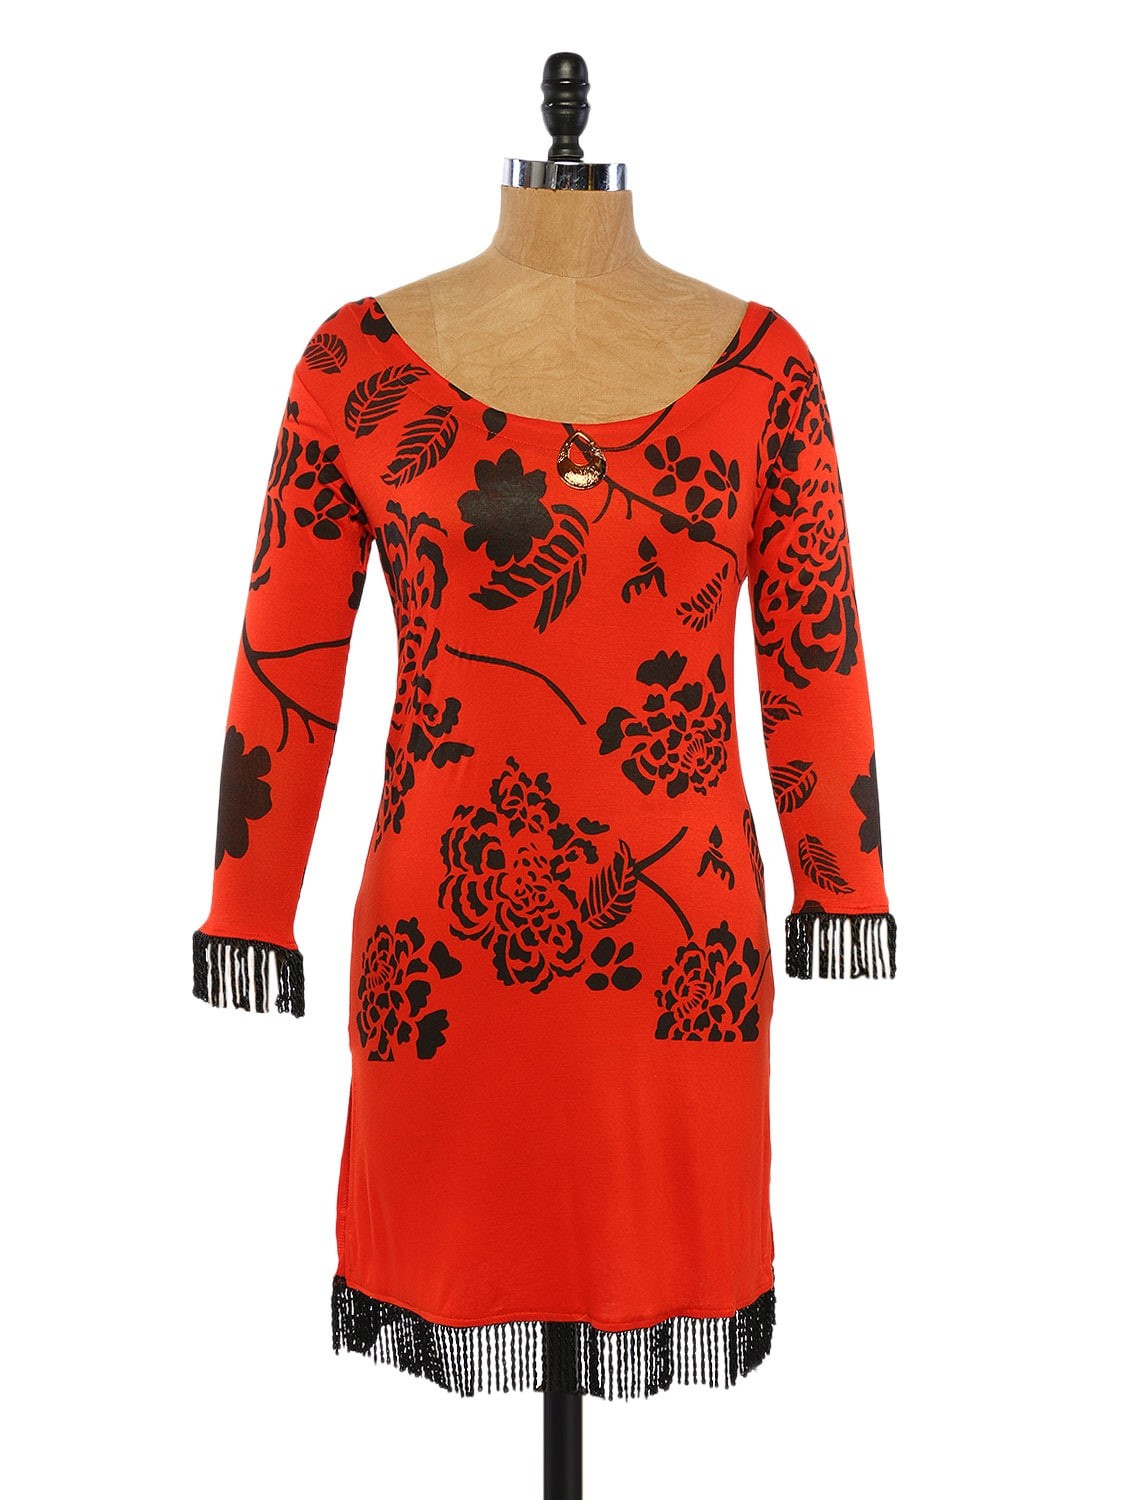 Orange And Black Printed Kurta With Frill On Sleeves And Bottom - Ira Soleil